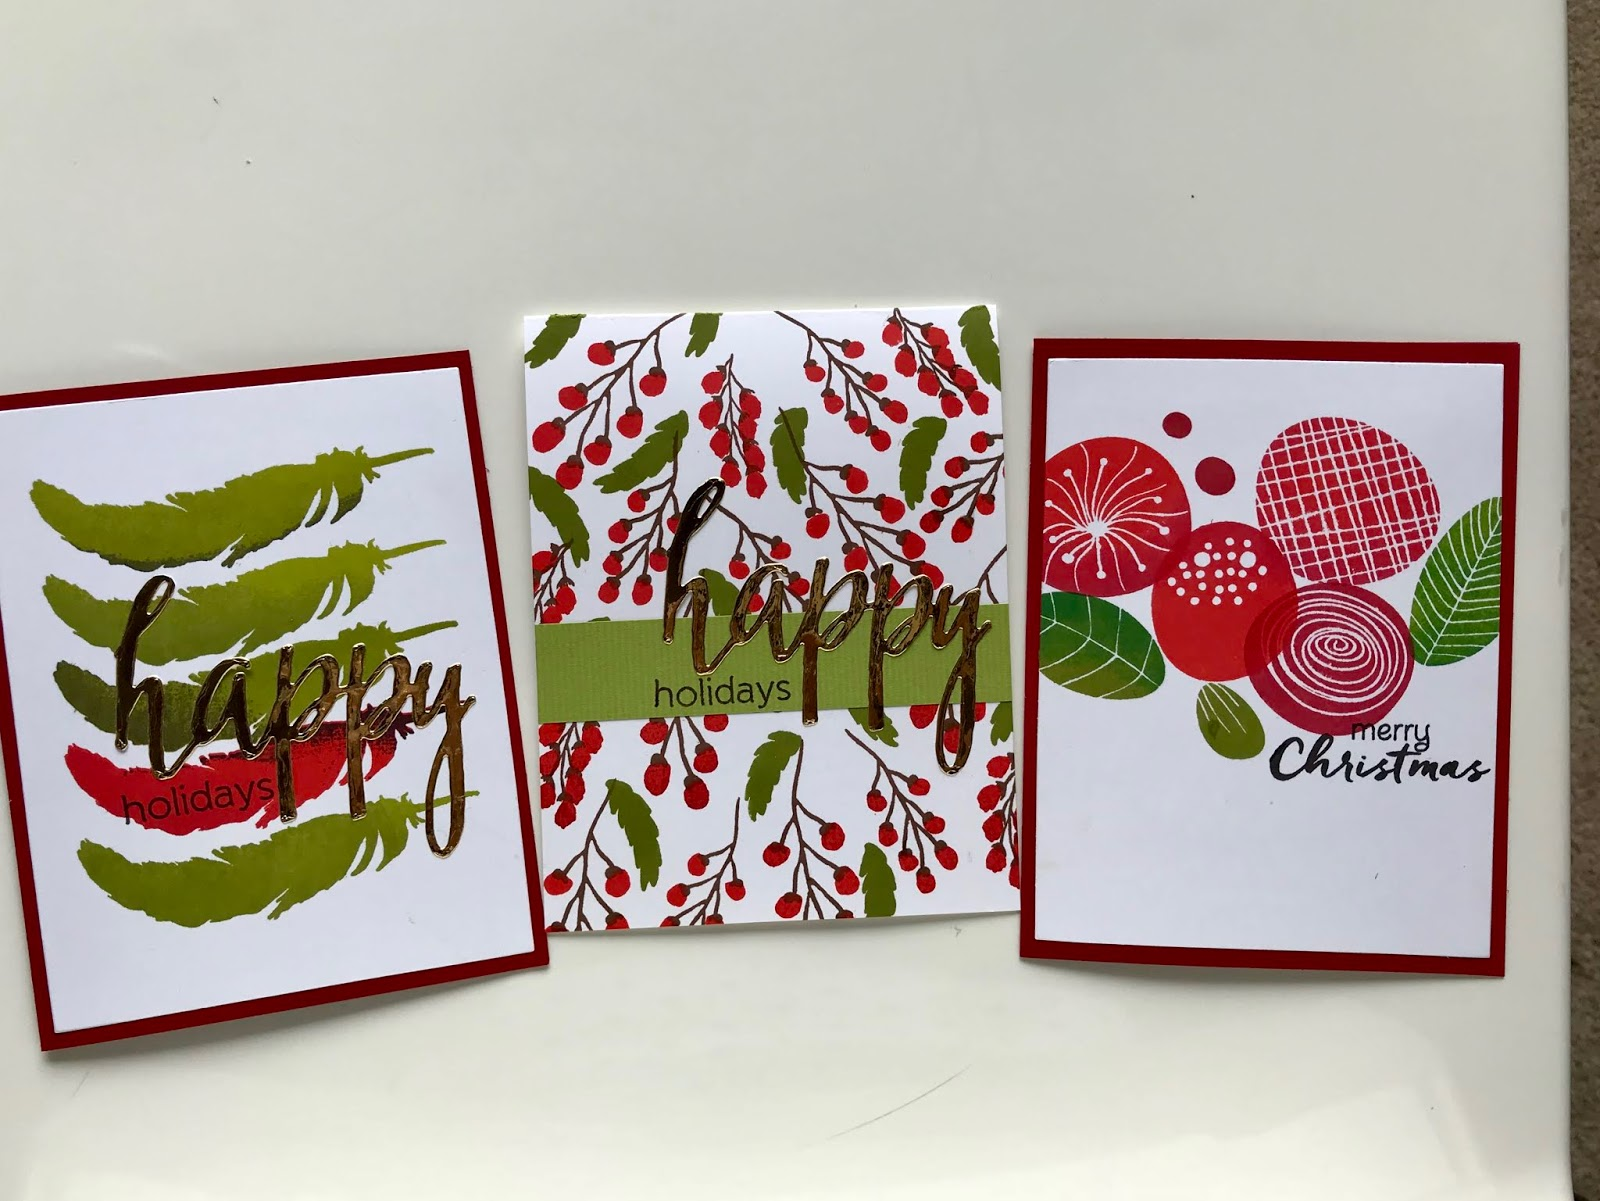 HelenCards - Mes cartes à moi: Christmas cards without Christmas ...